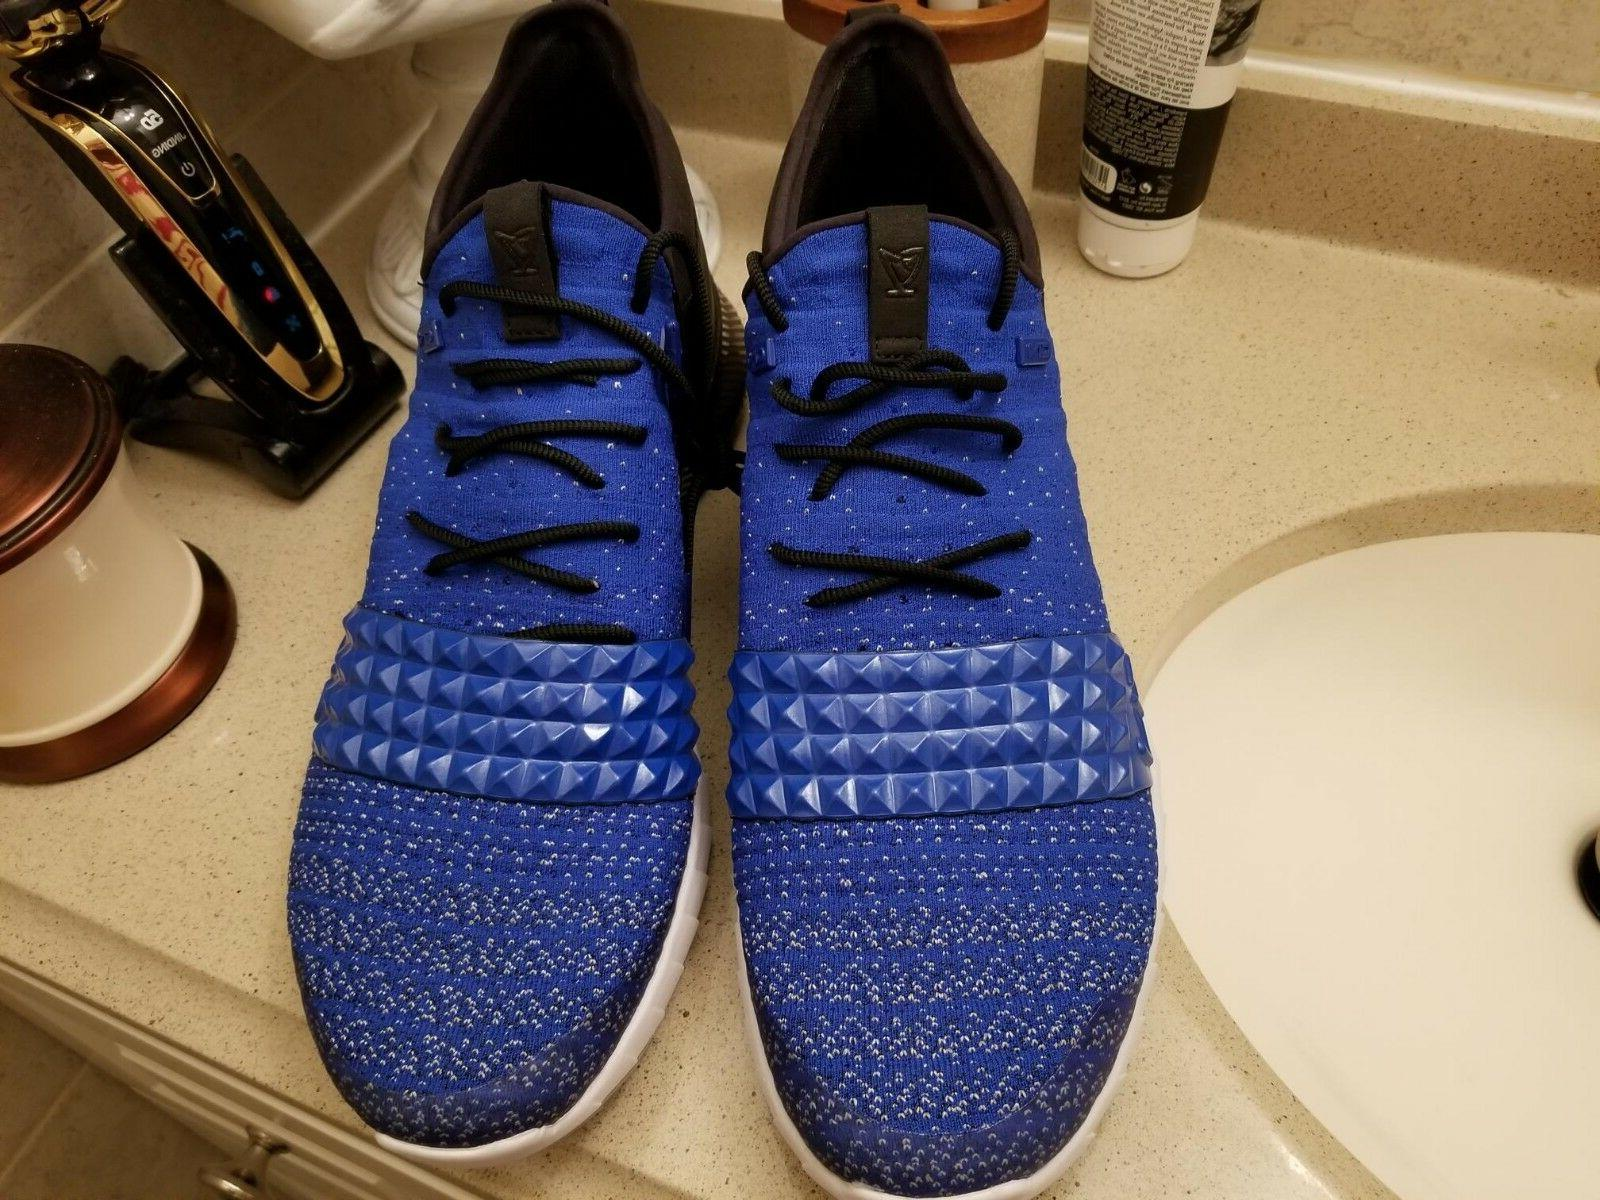 c1n cam newton trainer shoes blue black